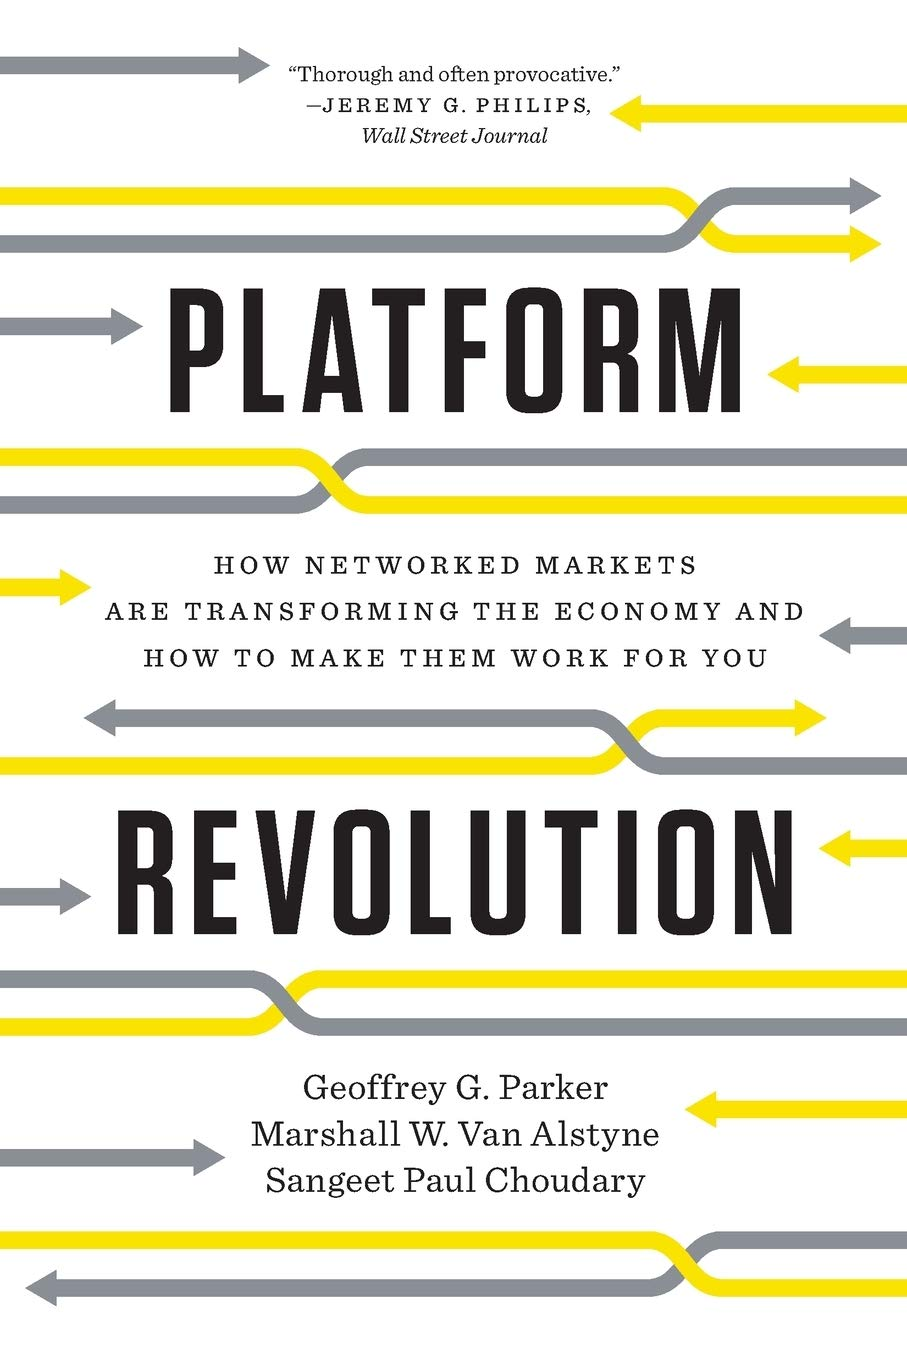 Platform Revolution: How Networked Markets Are Transforming the Economy--and How to Make Them Work for You - Geoffrey G. Parker , Marshall W. Van Alstyne, Sangeet Paul Choudary Freefall: America - quotes, rating, reviews, where to buy